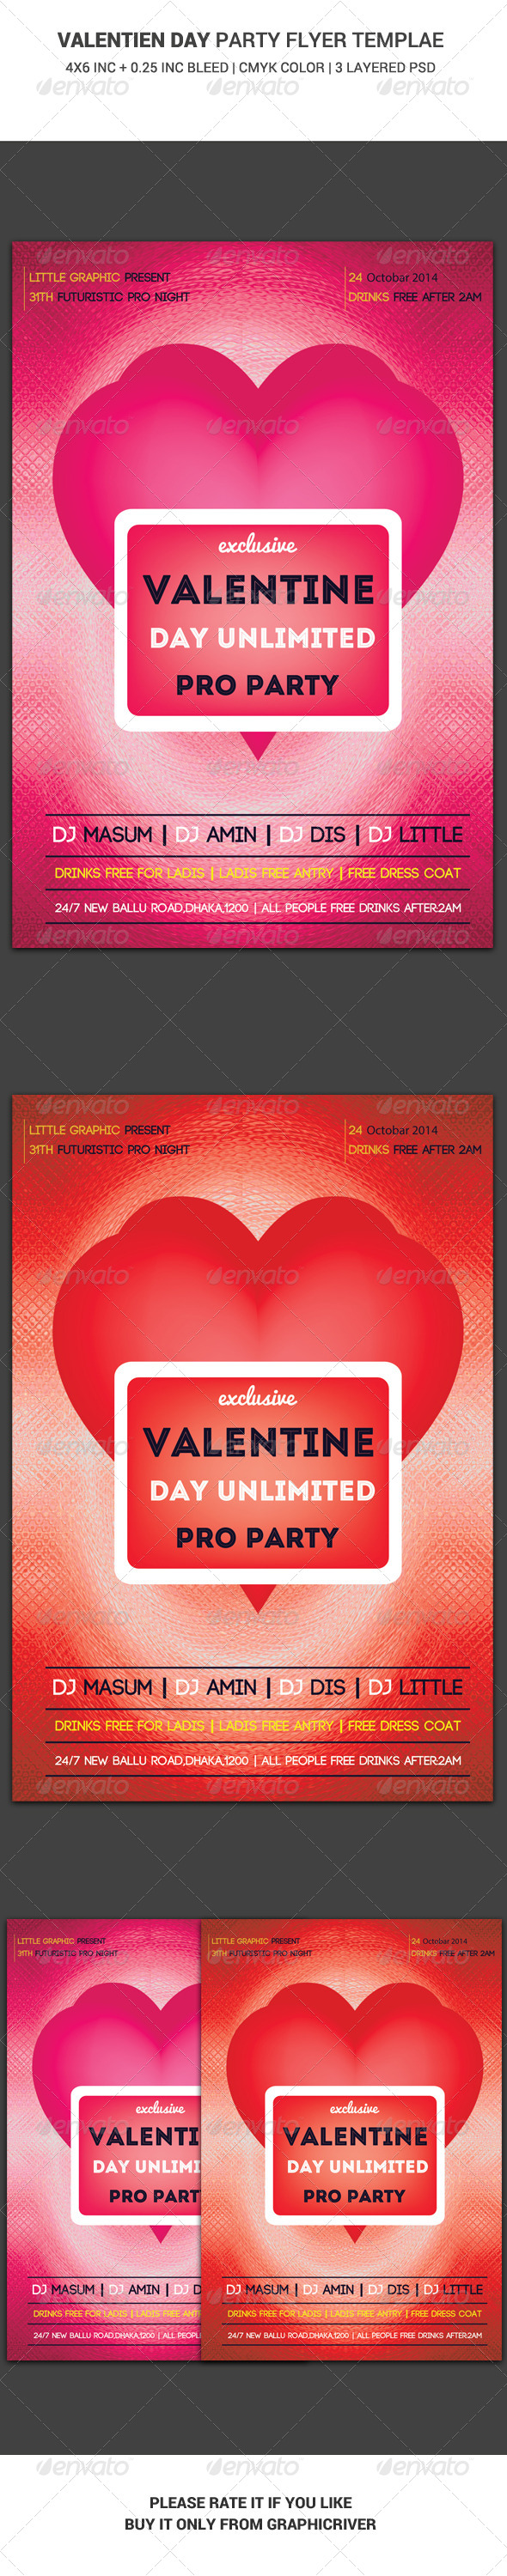 GraphicRiver Valentine Day Party Flyer Main File 6434273